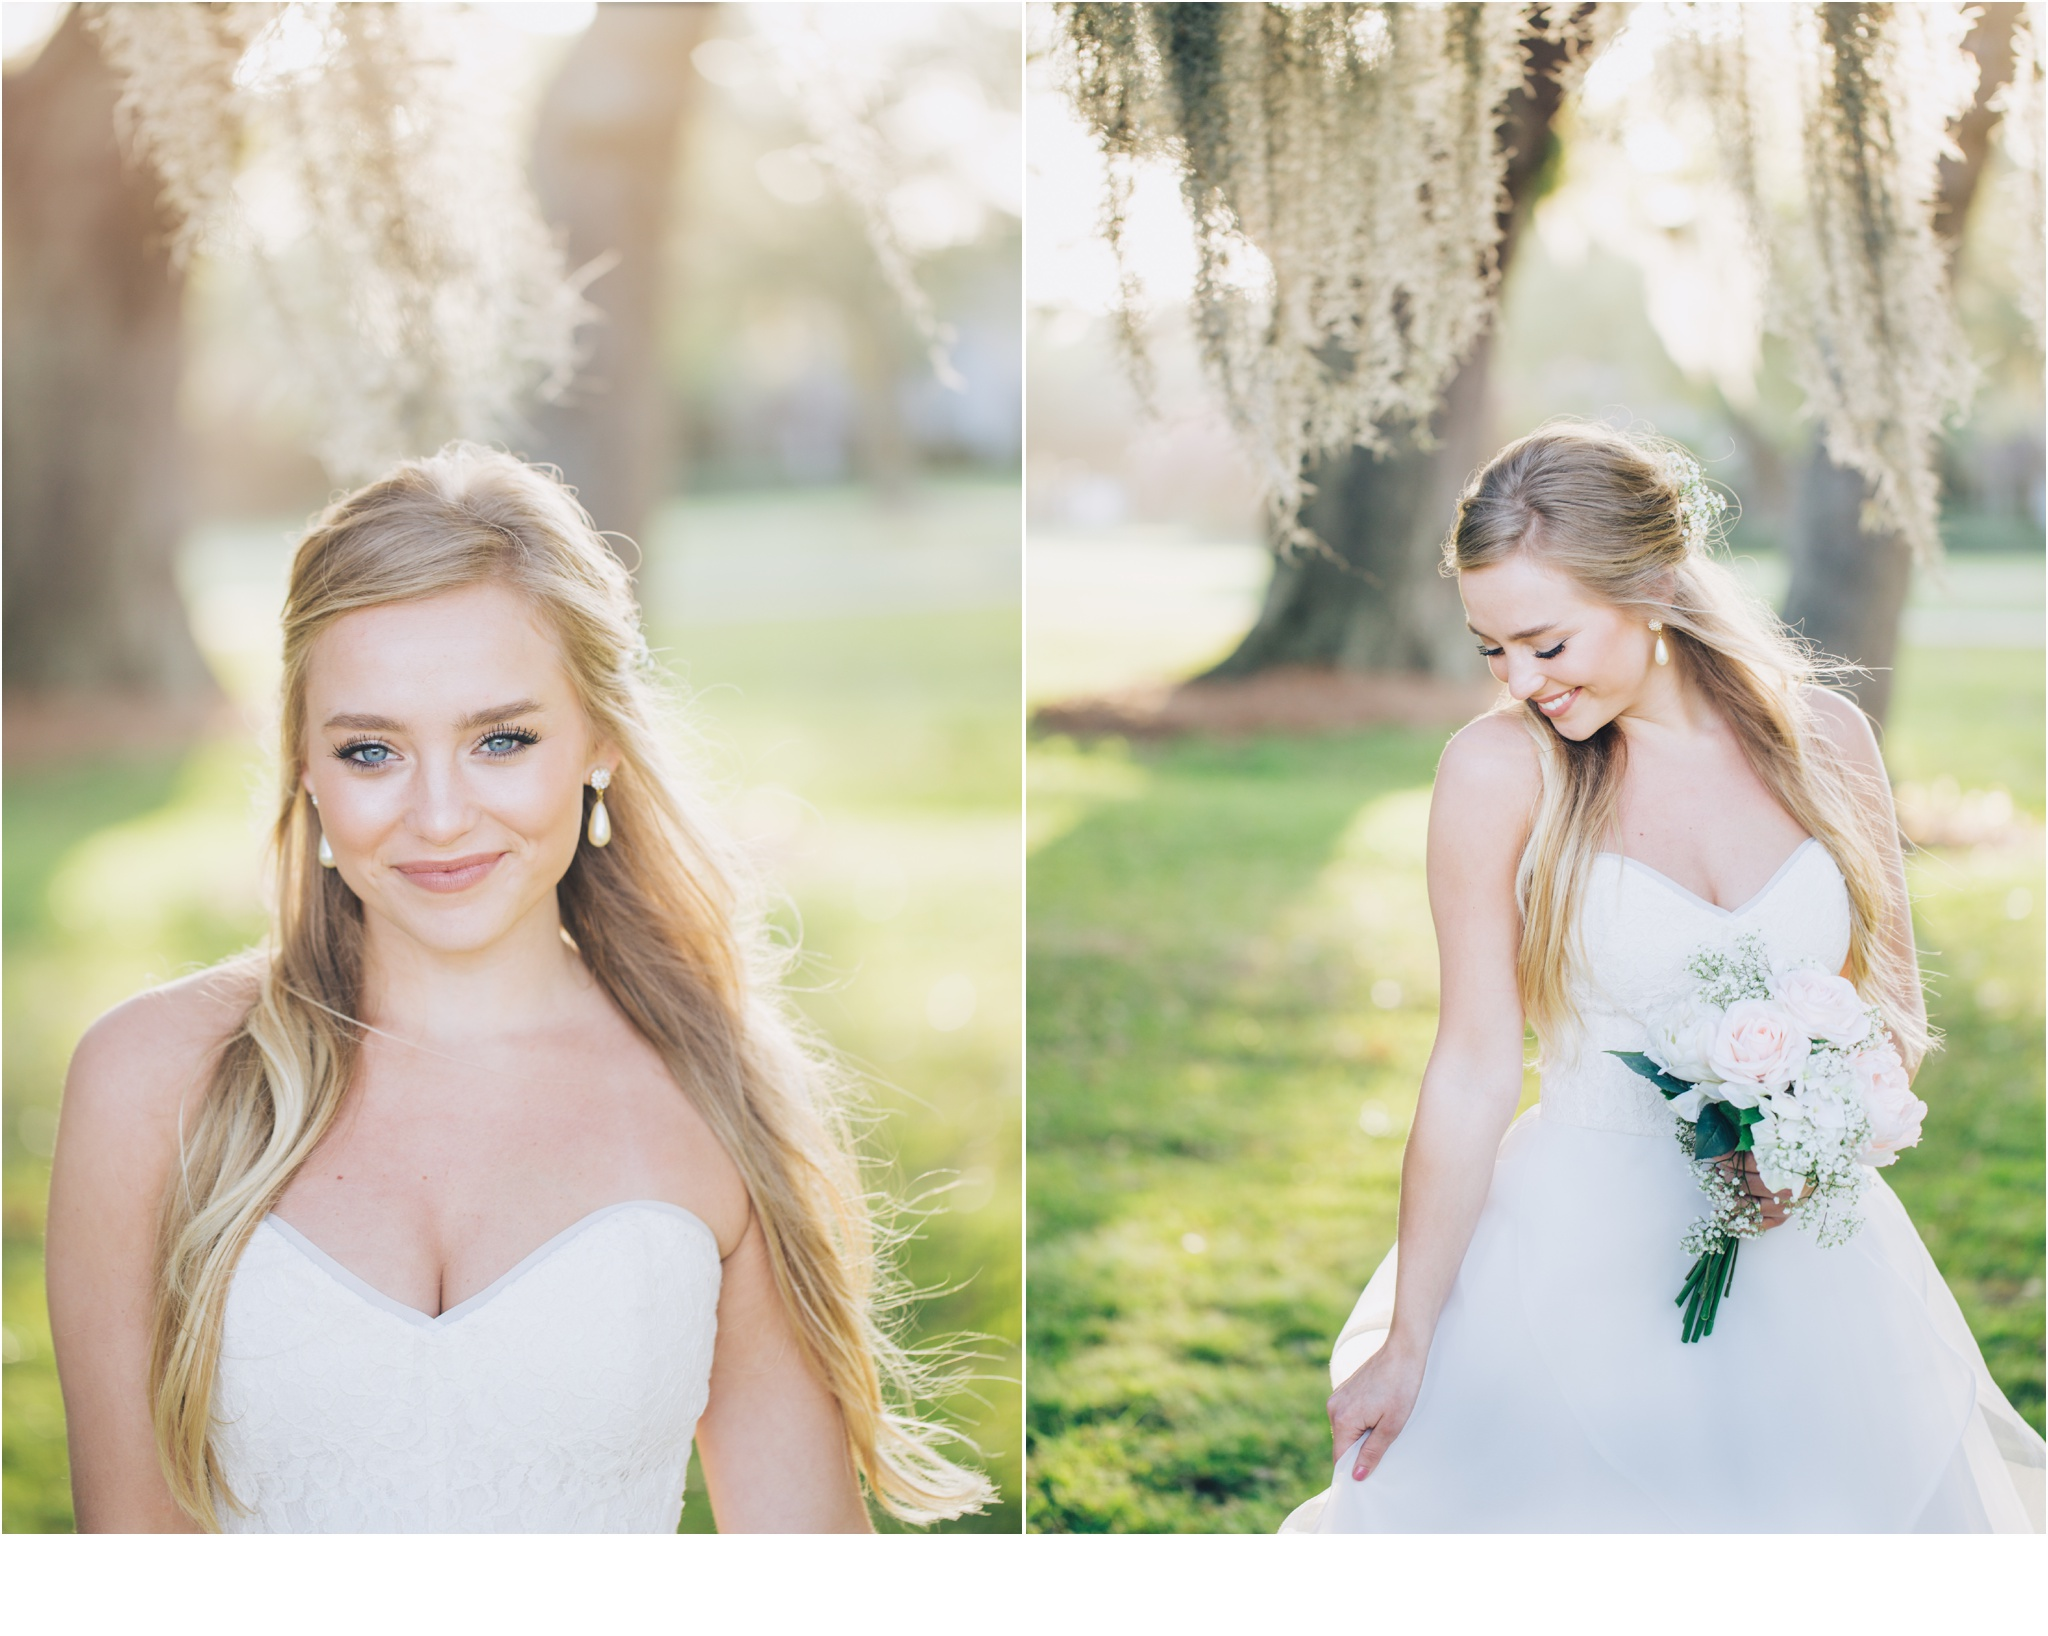 Rainey_Gregg_Photography_St._Simons_Island_Georgia_California_Wedding_Portrait_Photography_1413.jpg